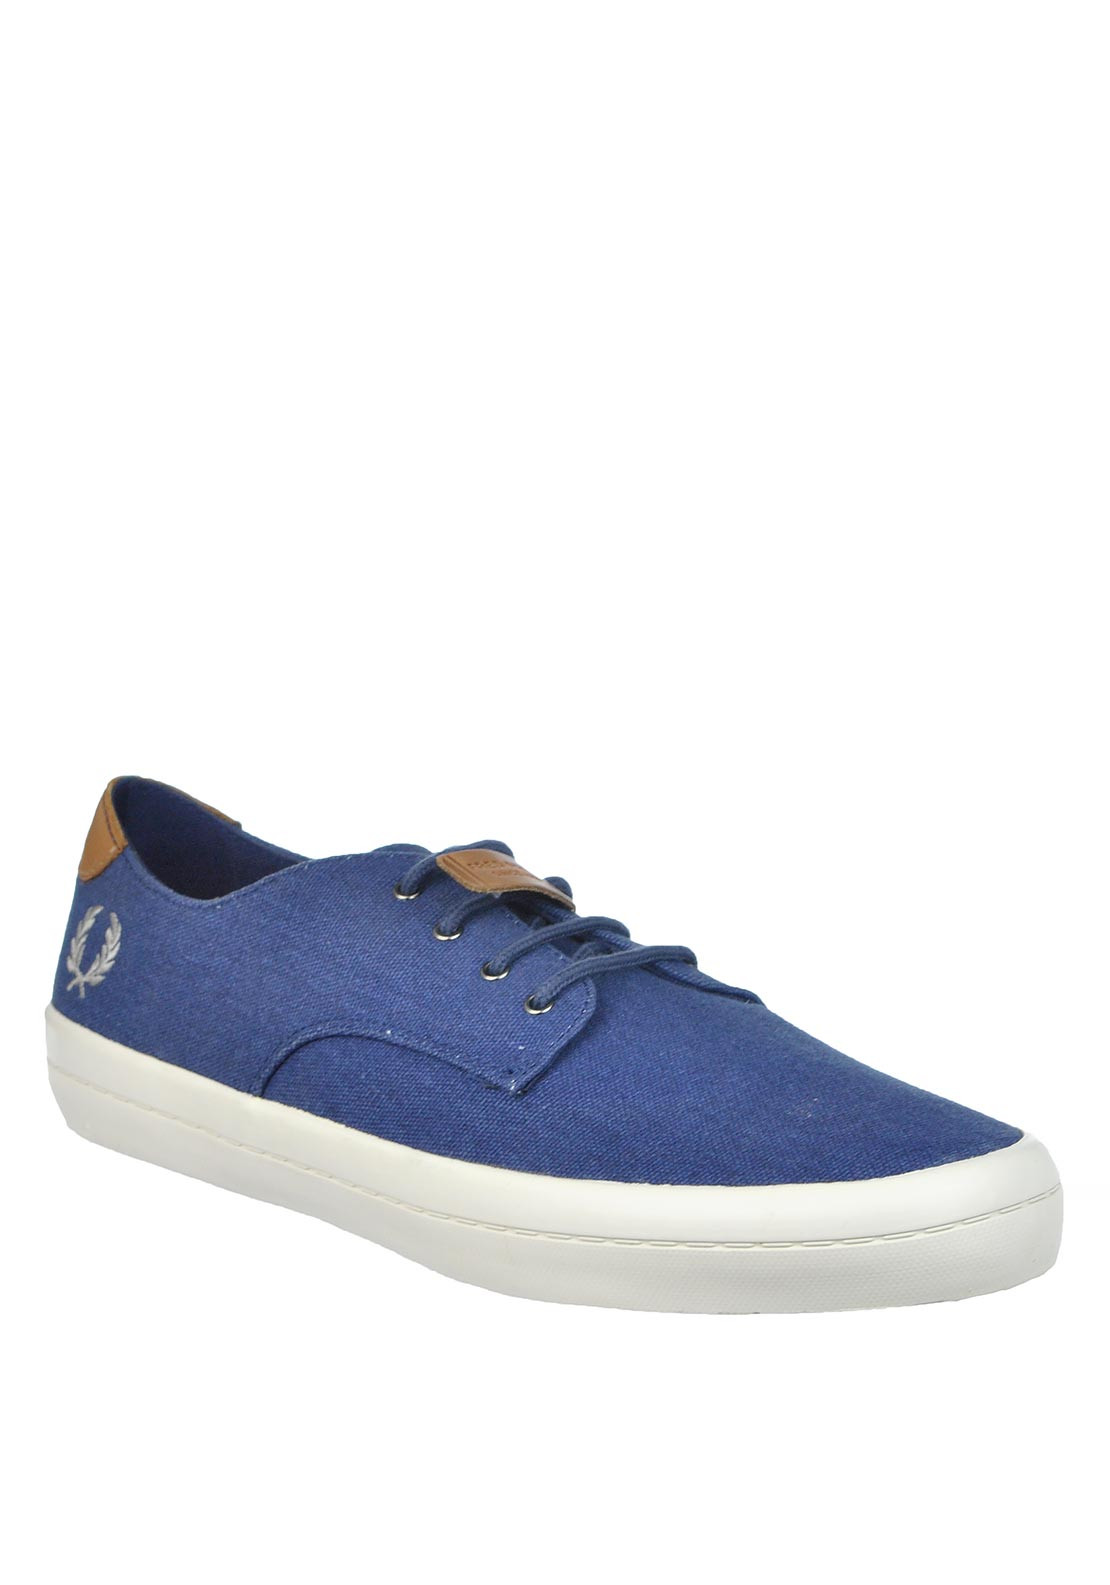 Fred Perry Mens Savit Printed Canvas, Denim Blue